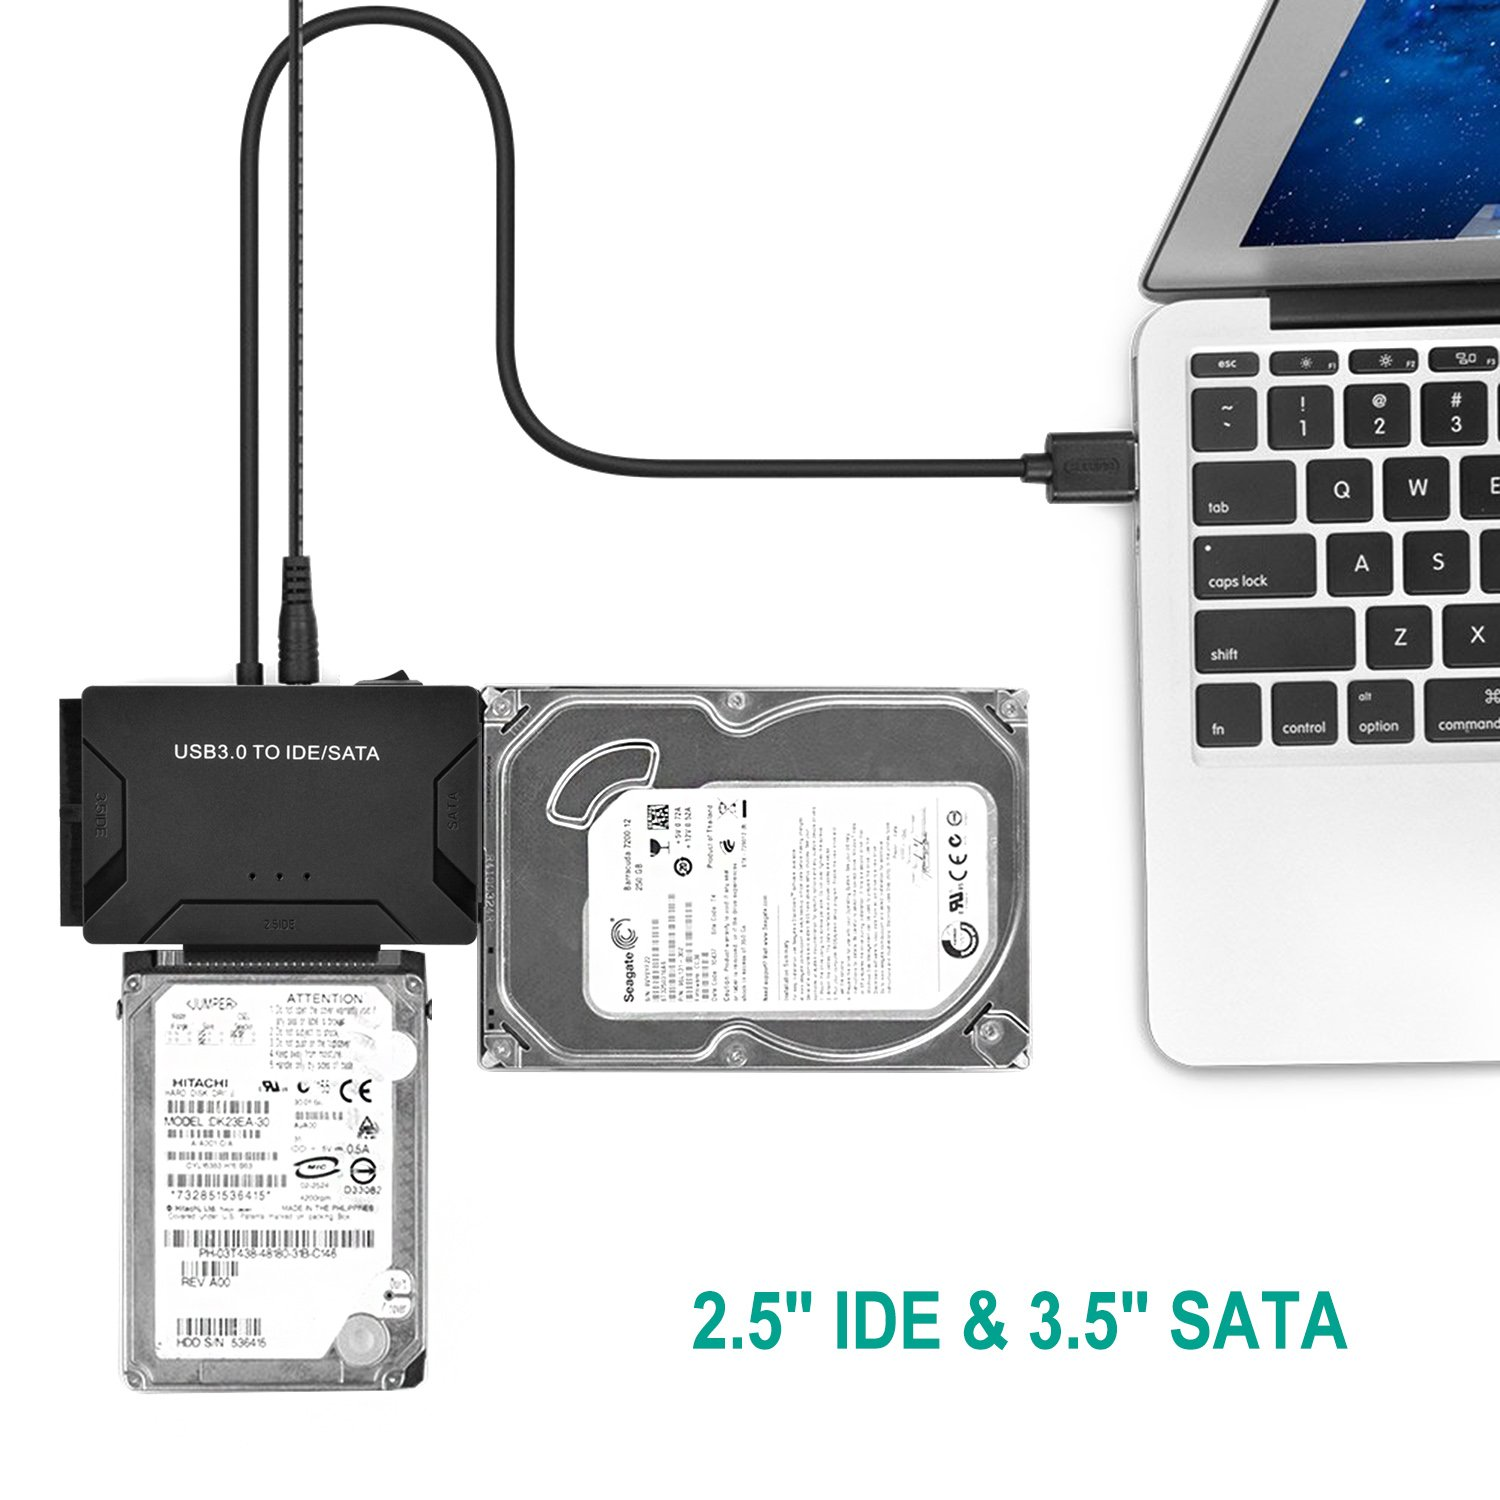 AGPtEK USB 3.0 to IDE/SATA Converter Adapter with Power Switch for 2.5''/3.5''SATA/IDE/SSD Hard Drive Disks, Support4TB, Include 12V 2APower Adapter & USB 3.0 Cable by AGPTEK (Image #6)